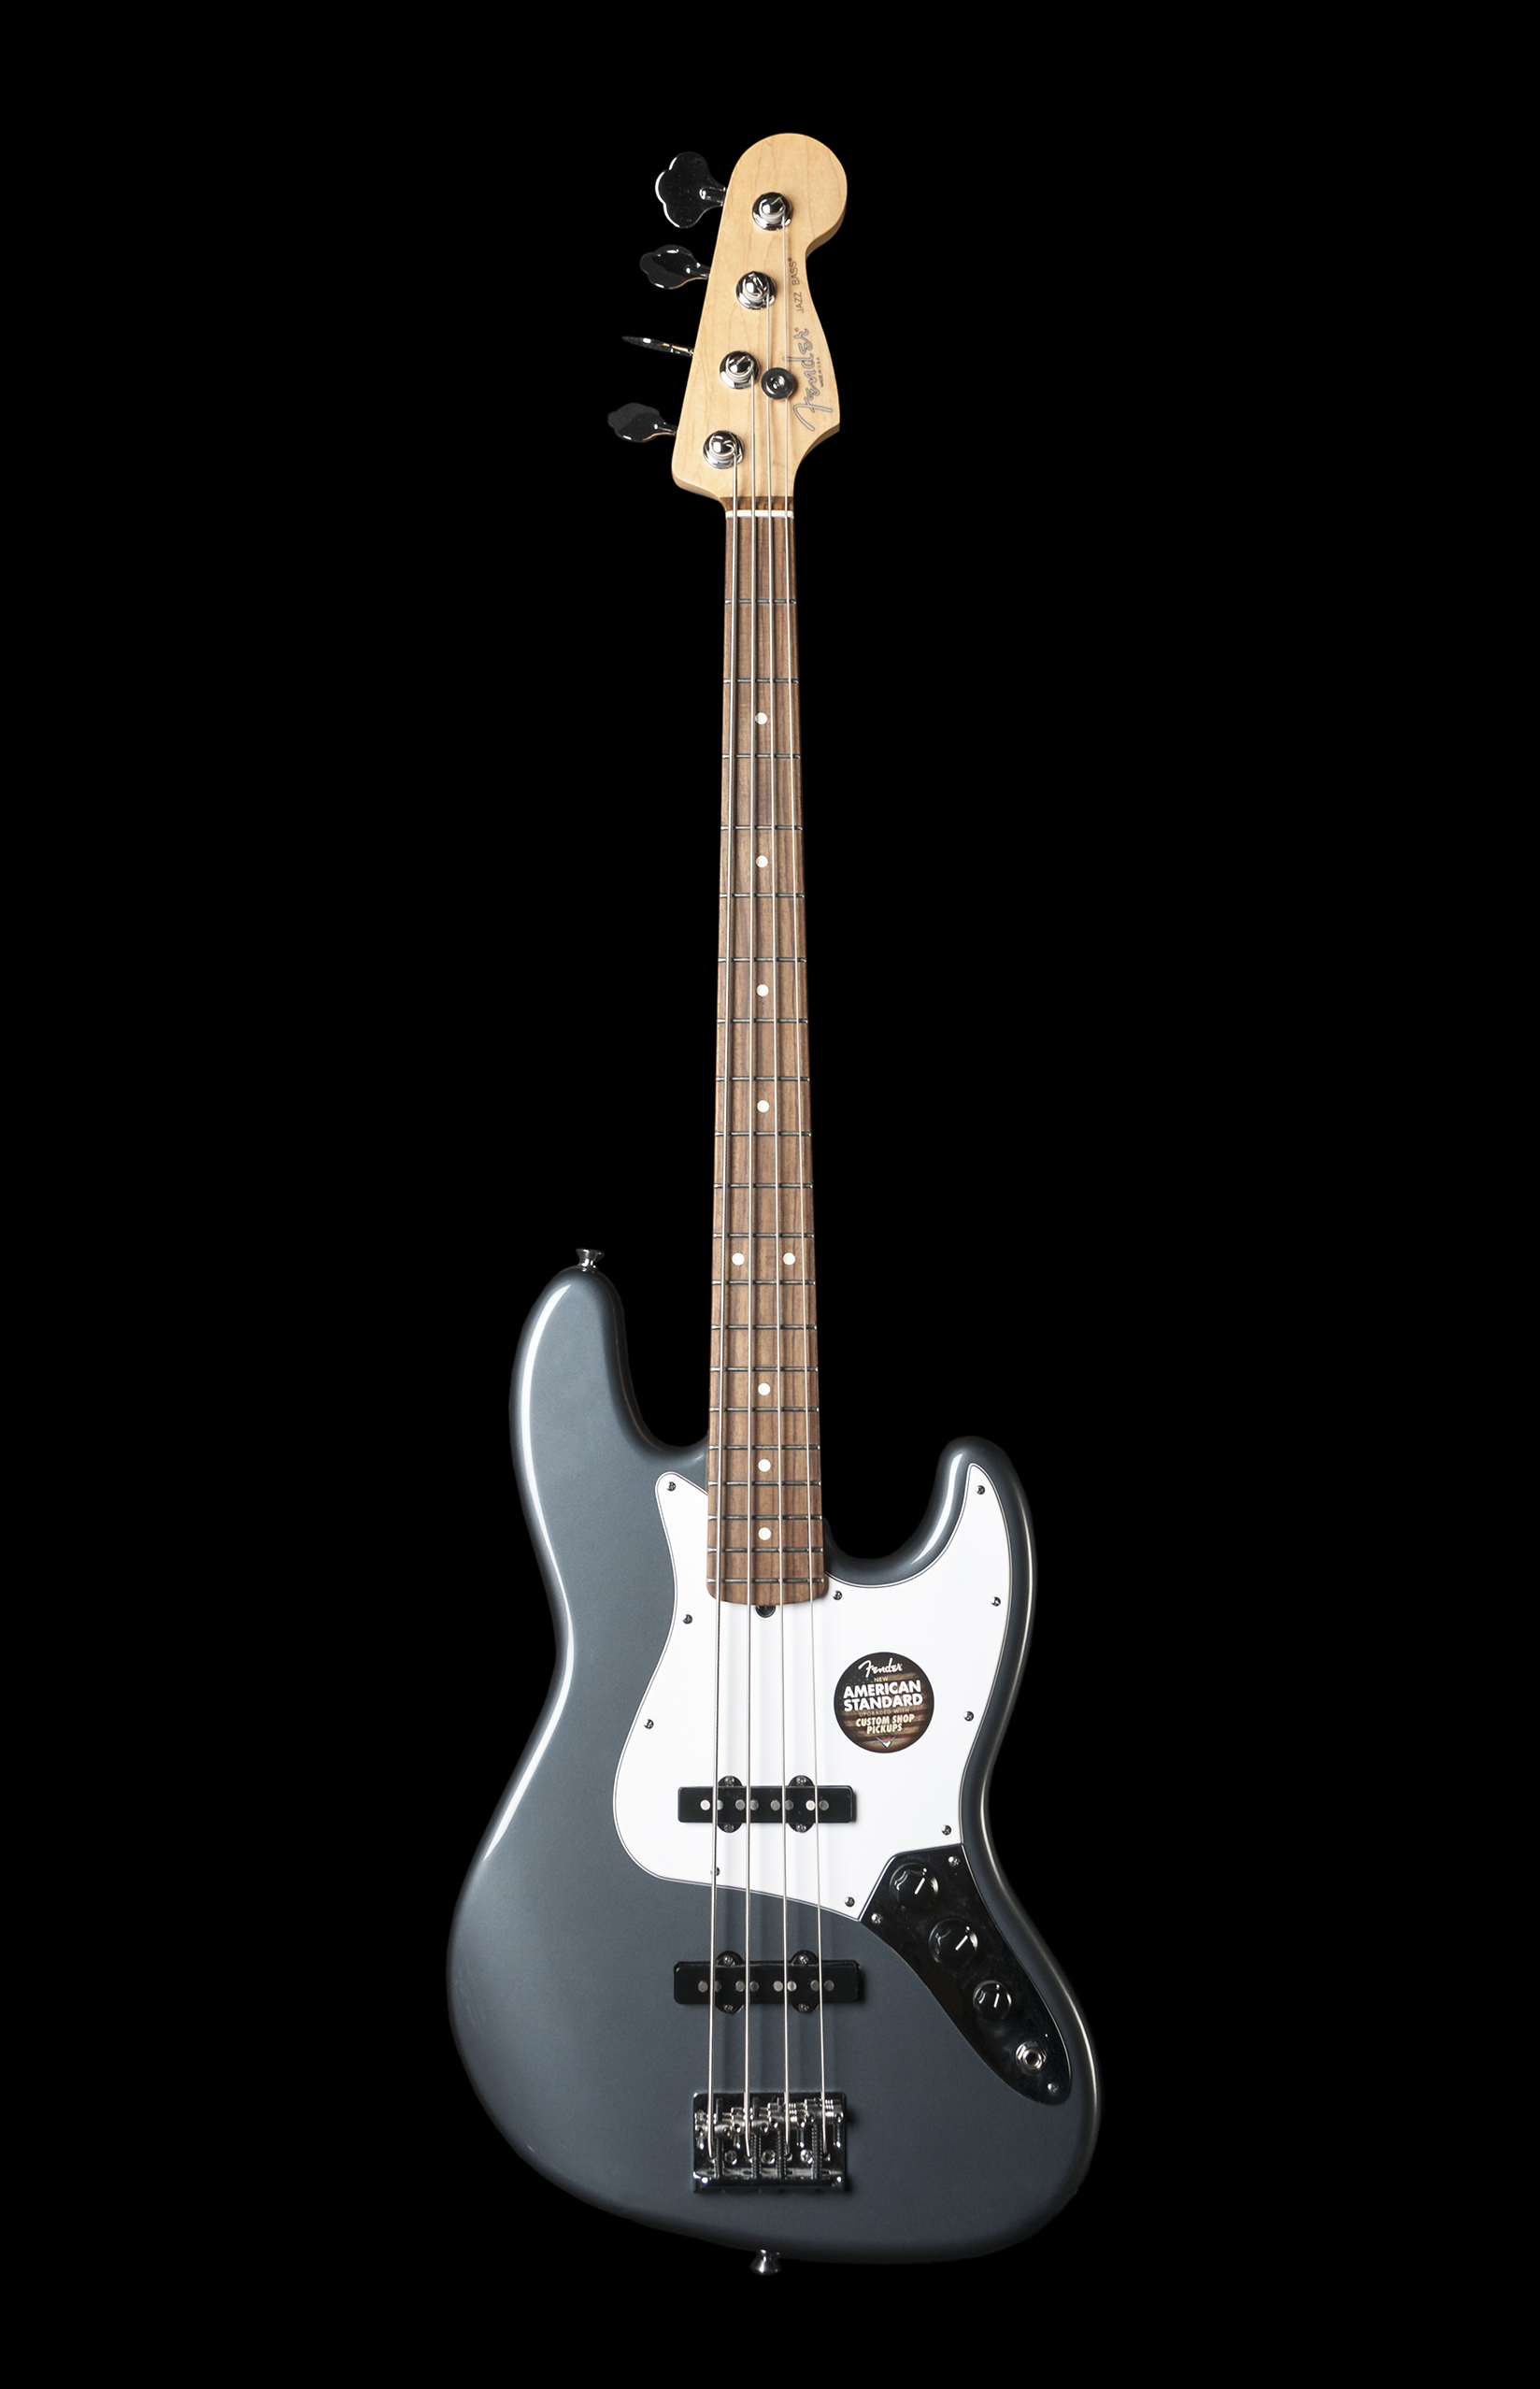 Fender American Standard 4 String Jazz Bass in Charcoal